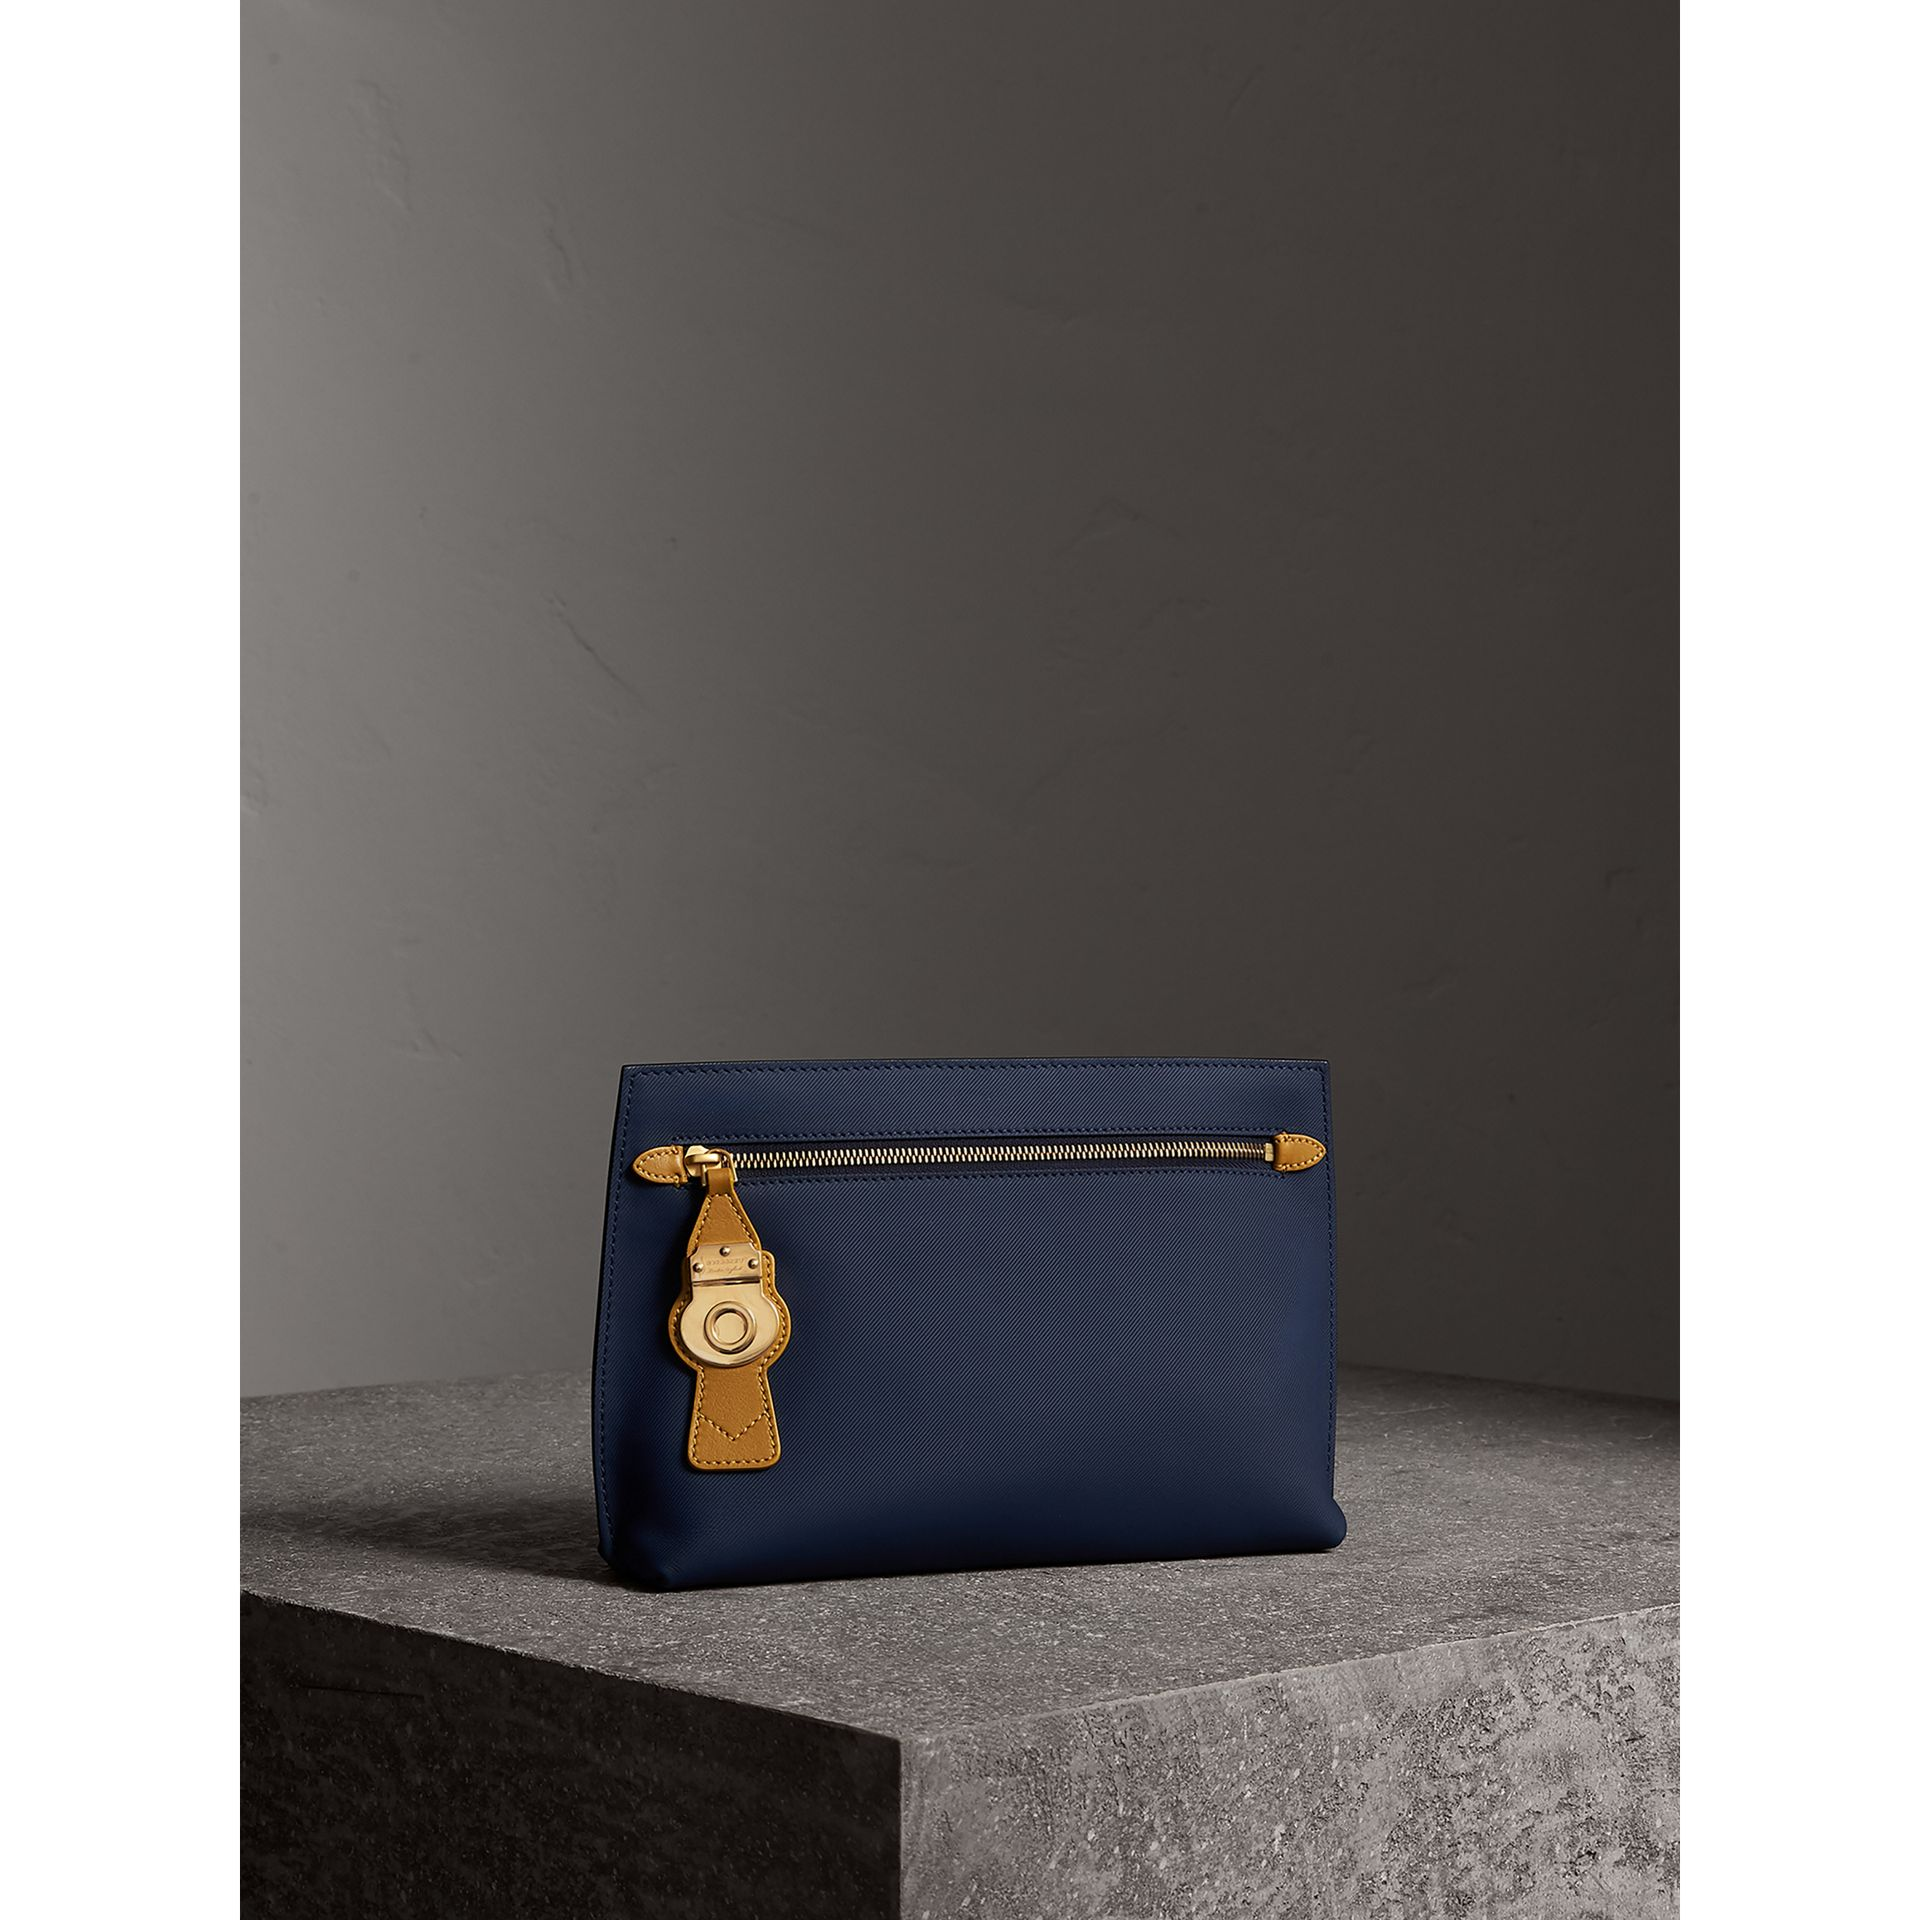 Two-tone Trench Leather Wristlet Pouch in Ink Blue/ochre Yellow - Women | Burberry - gallery image 5